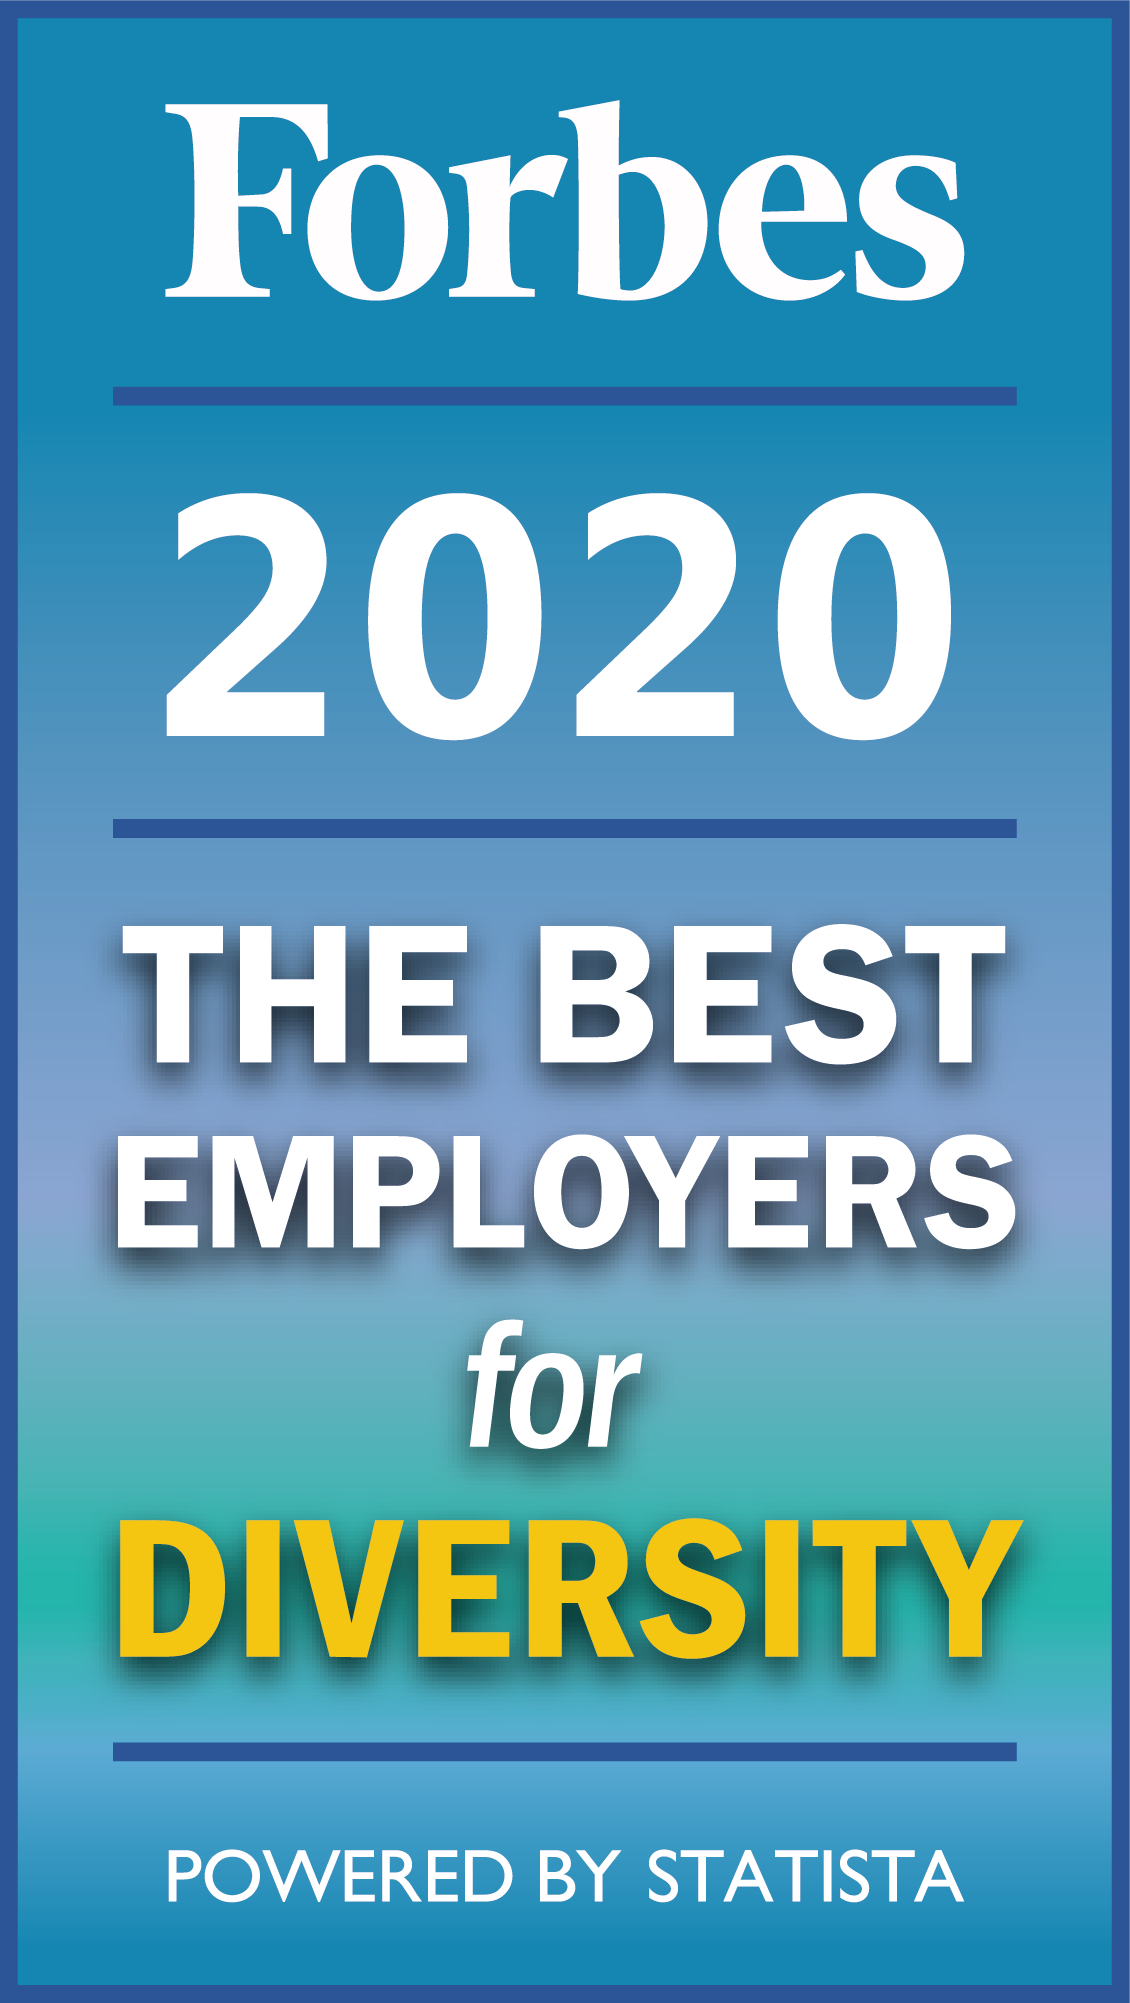 Caltech received an award from Forbes as one of the best employers for diversity in the year 2020